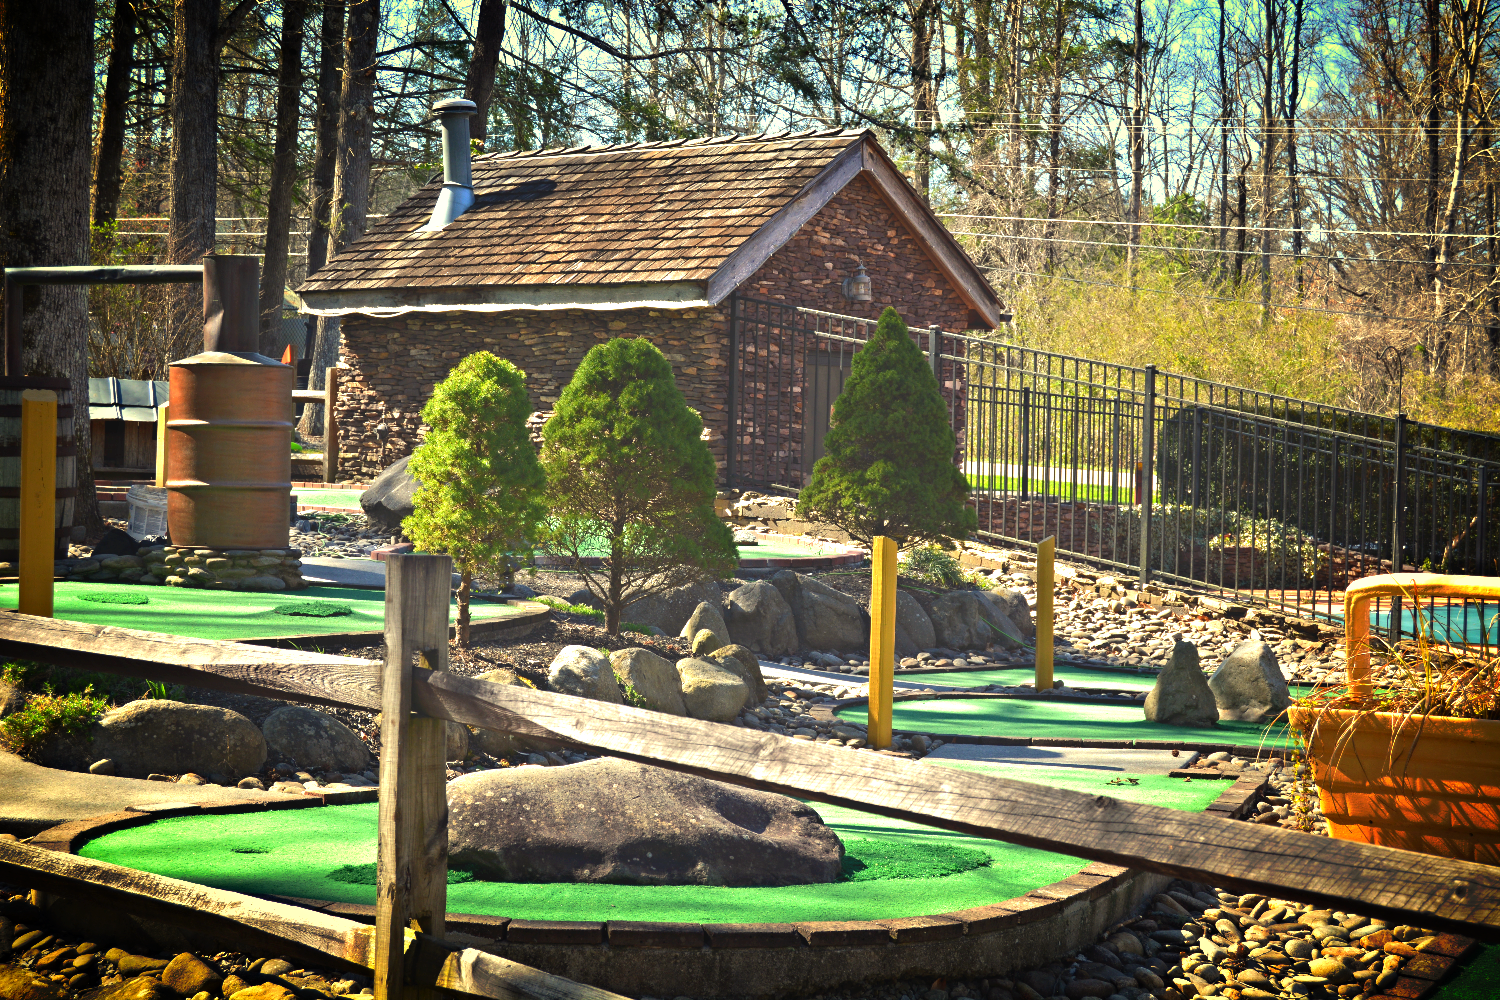 Smoky Mountain Mini Golf